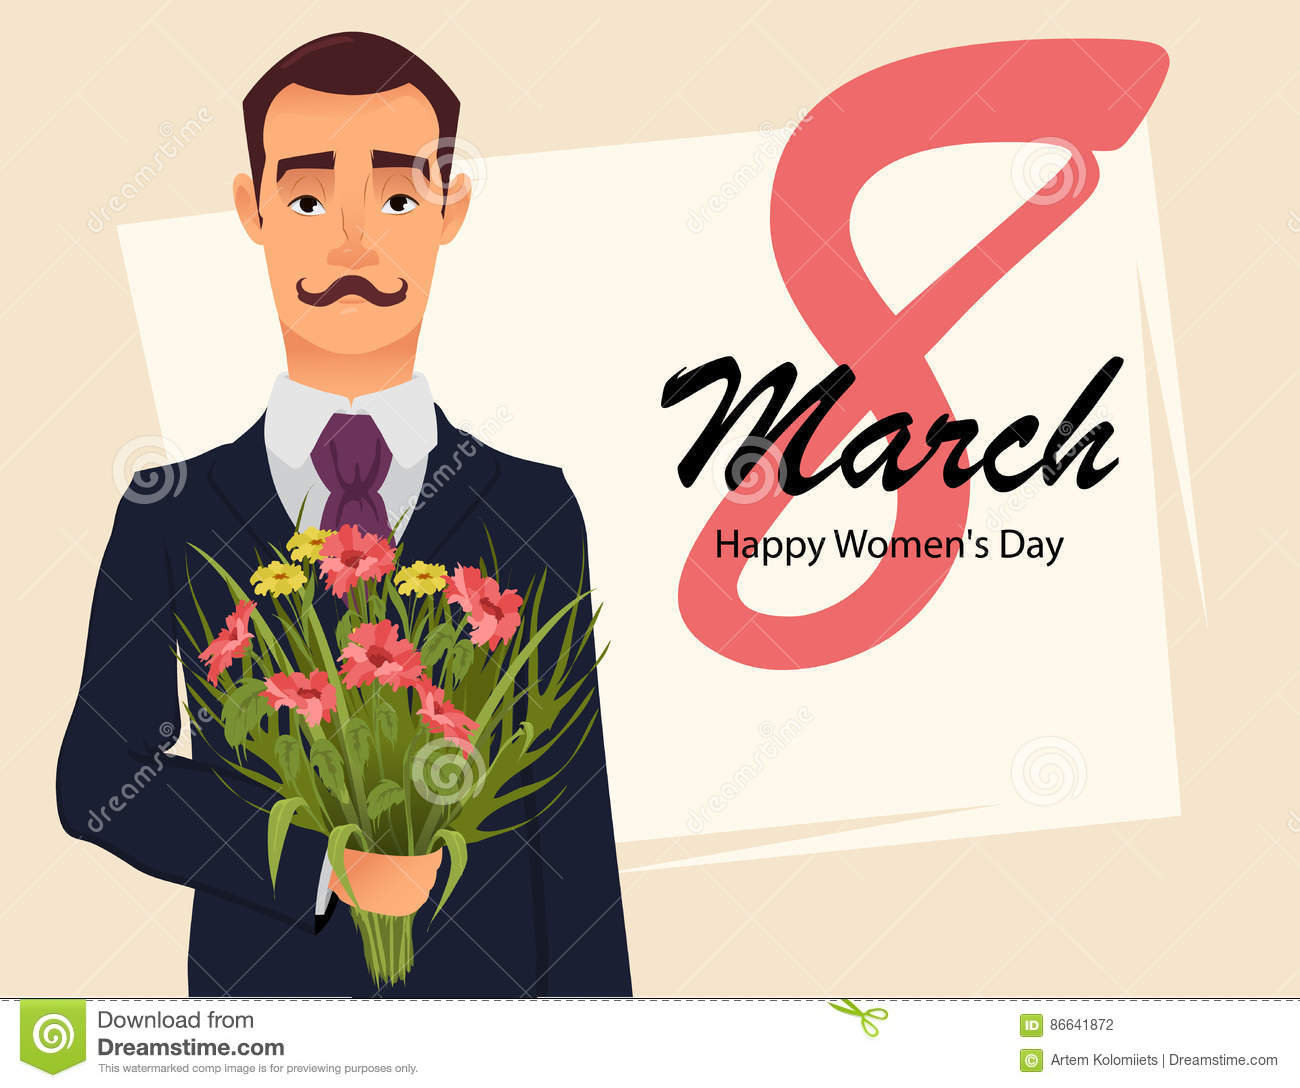 8 March greeting card. Women`s day greeting card. Handsome gentleman in suit with mustache holding bouquet of wildflowers